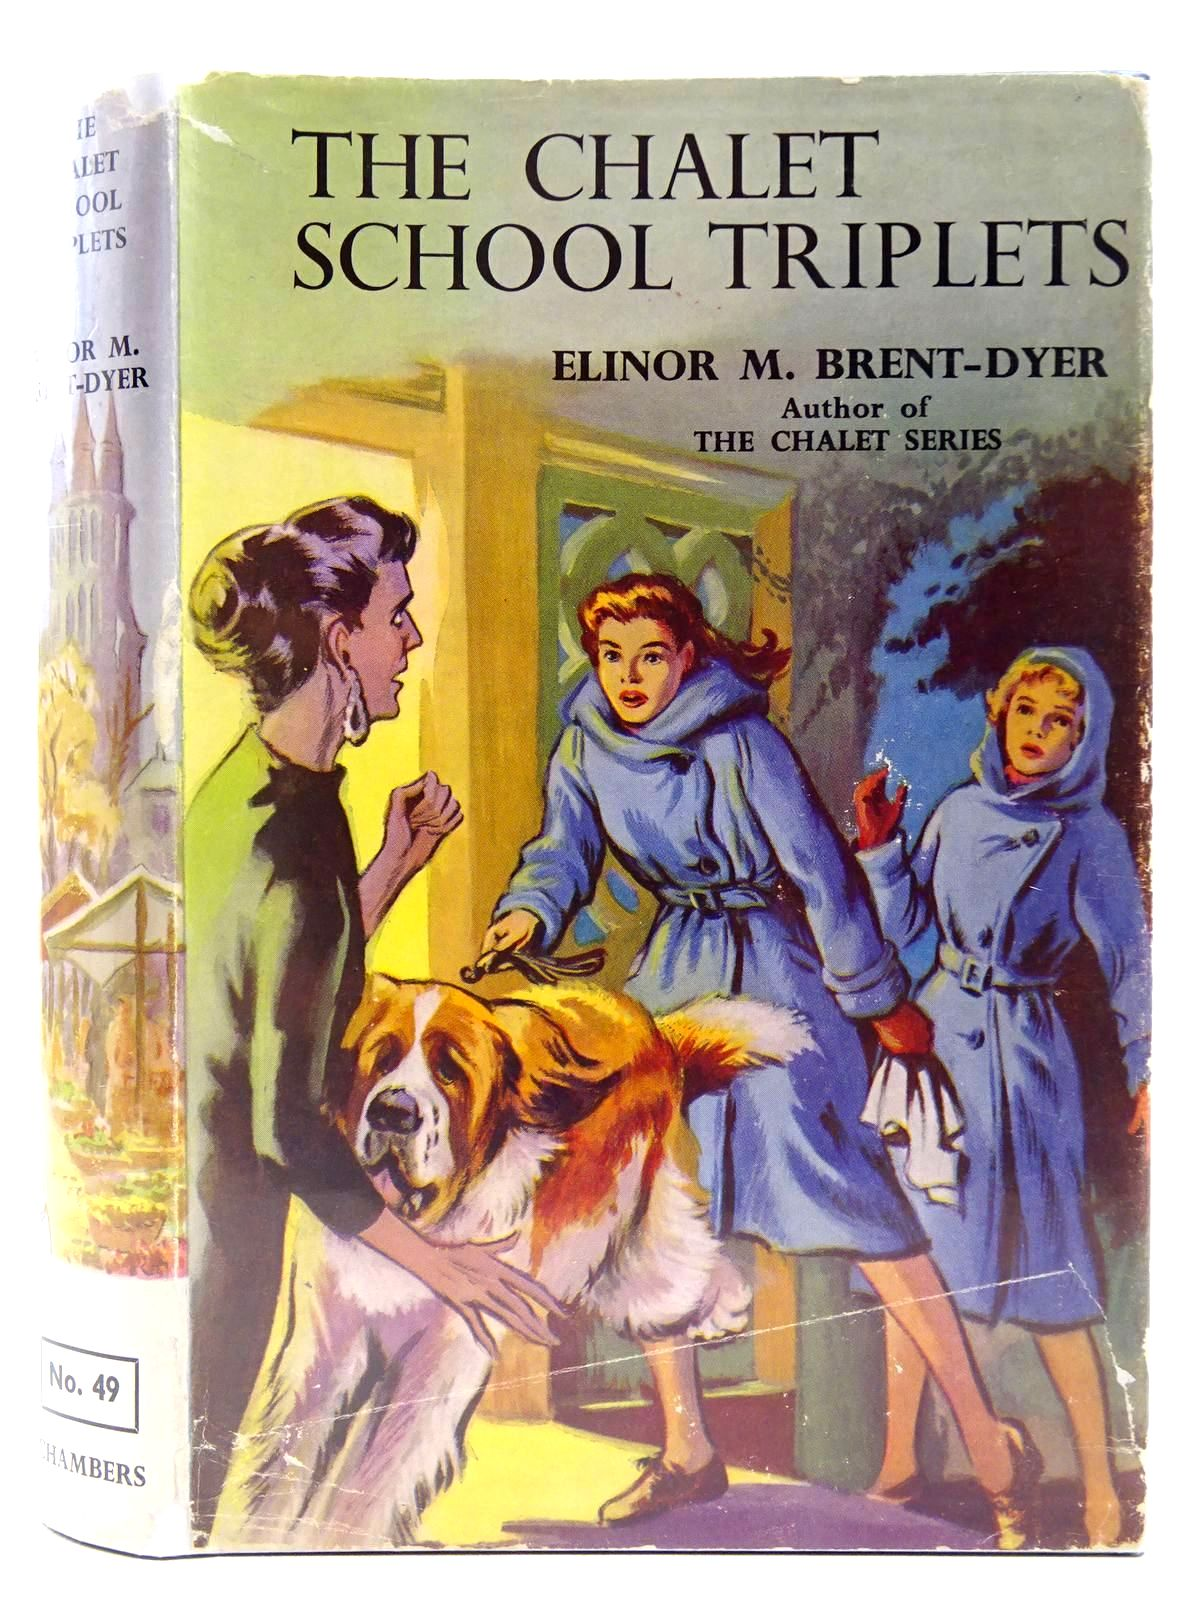 Photo of THE CHALET SCHOOL TRIPLETS written by Brent-Dyer, Elinor M. illustrated by Brook, D. published by W. & R. Chambers Limited (STOCK CODE: 2128222)  for sale by Stella & Rose's Books